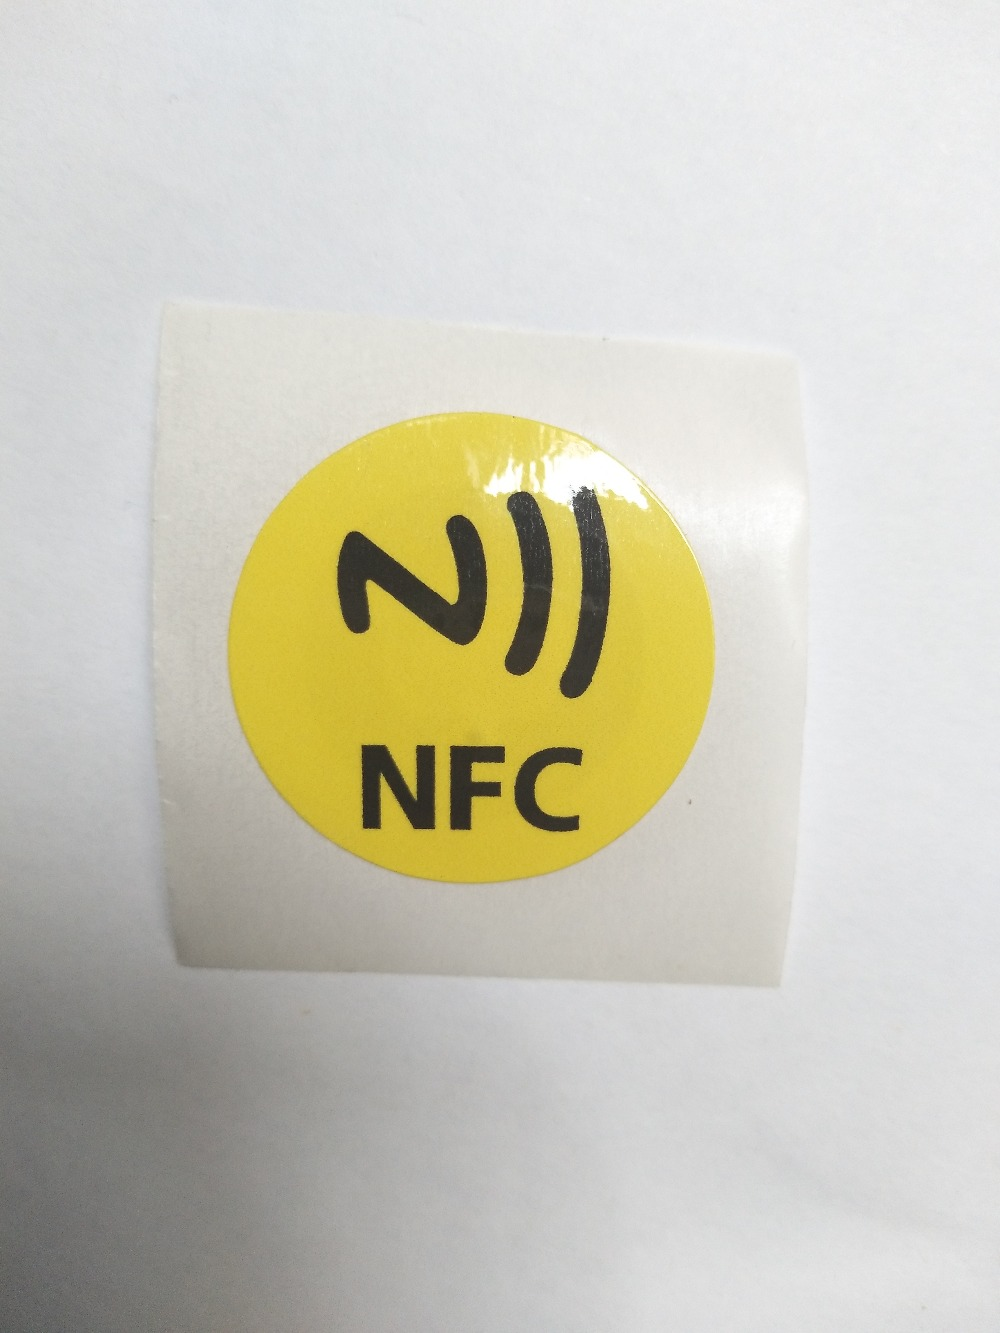 15pcs/lot NFC Tag Sticker 13.56mhz RFID Label Tag NTAG213 Chip NFC Smart Tag 1K 30mm Diameter Compatible with All NFC Phones hw v7 020 v2 23 ktag master version k tag hardware v6 070 v2 13 k tag 7 020 ecu programming tool use online no token dhl free